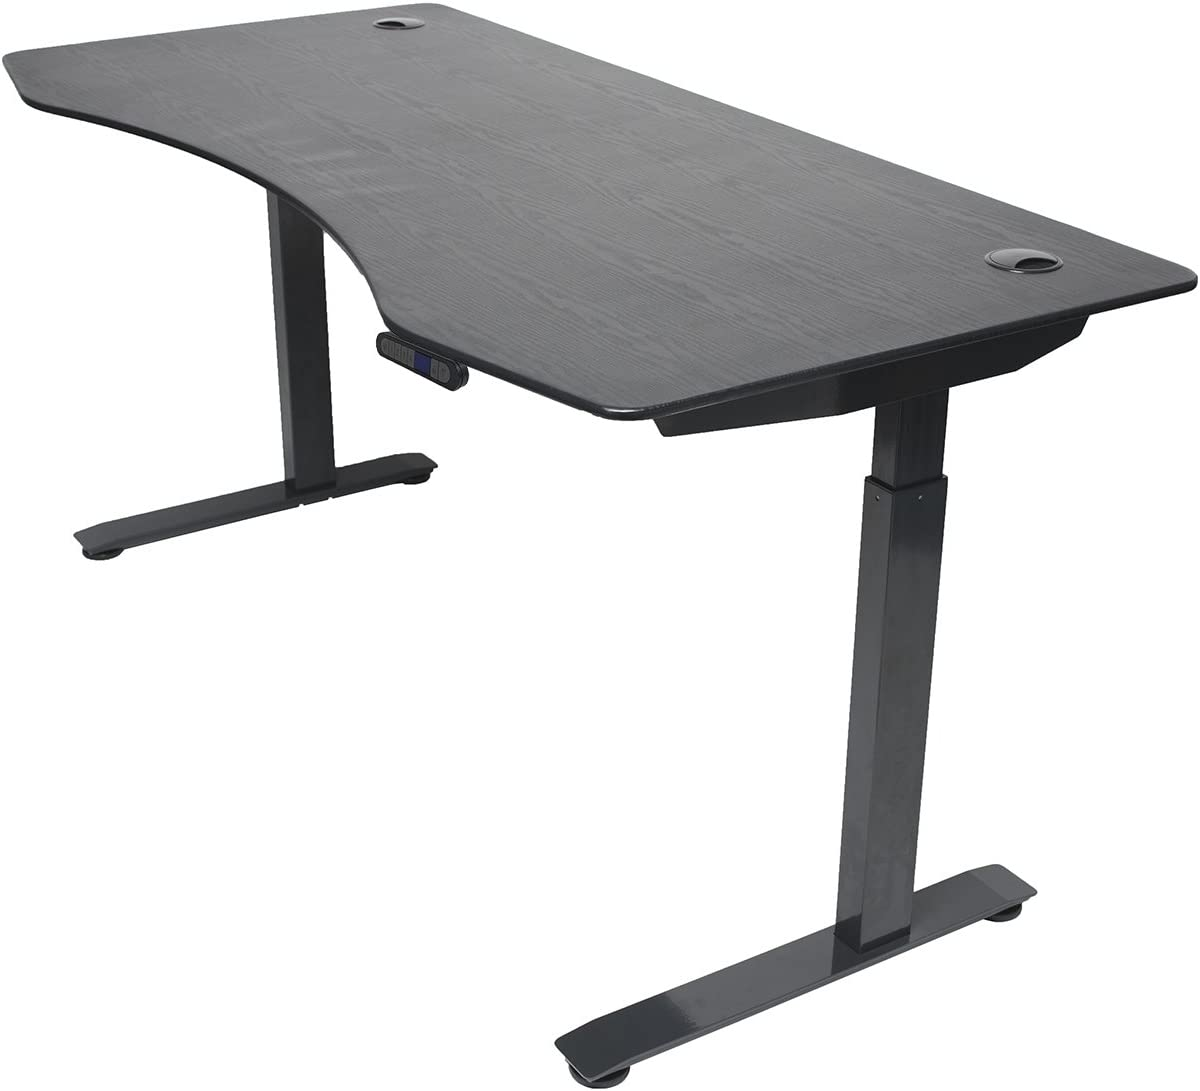 ApexDesk Elite Series 60 W Electric Height Adjustable Standing Desk Memory Controller, 60 Black Top, Black Frame